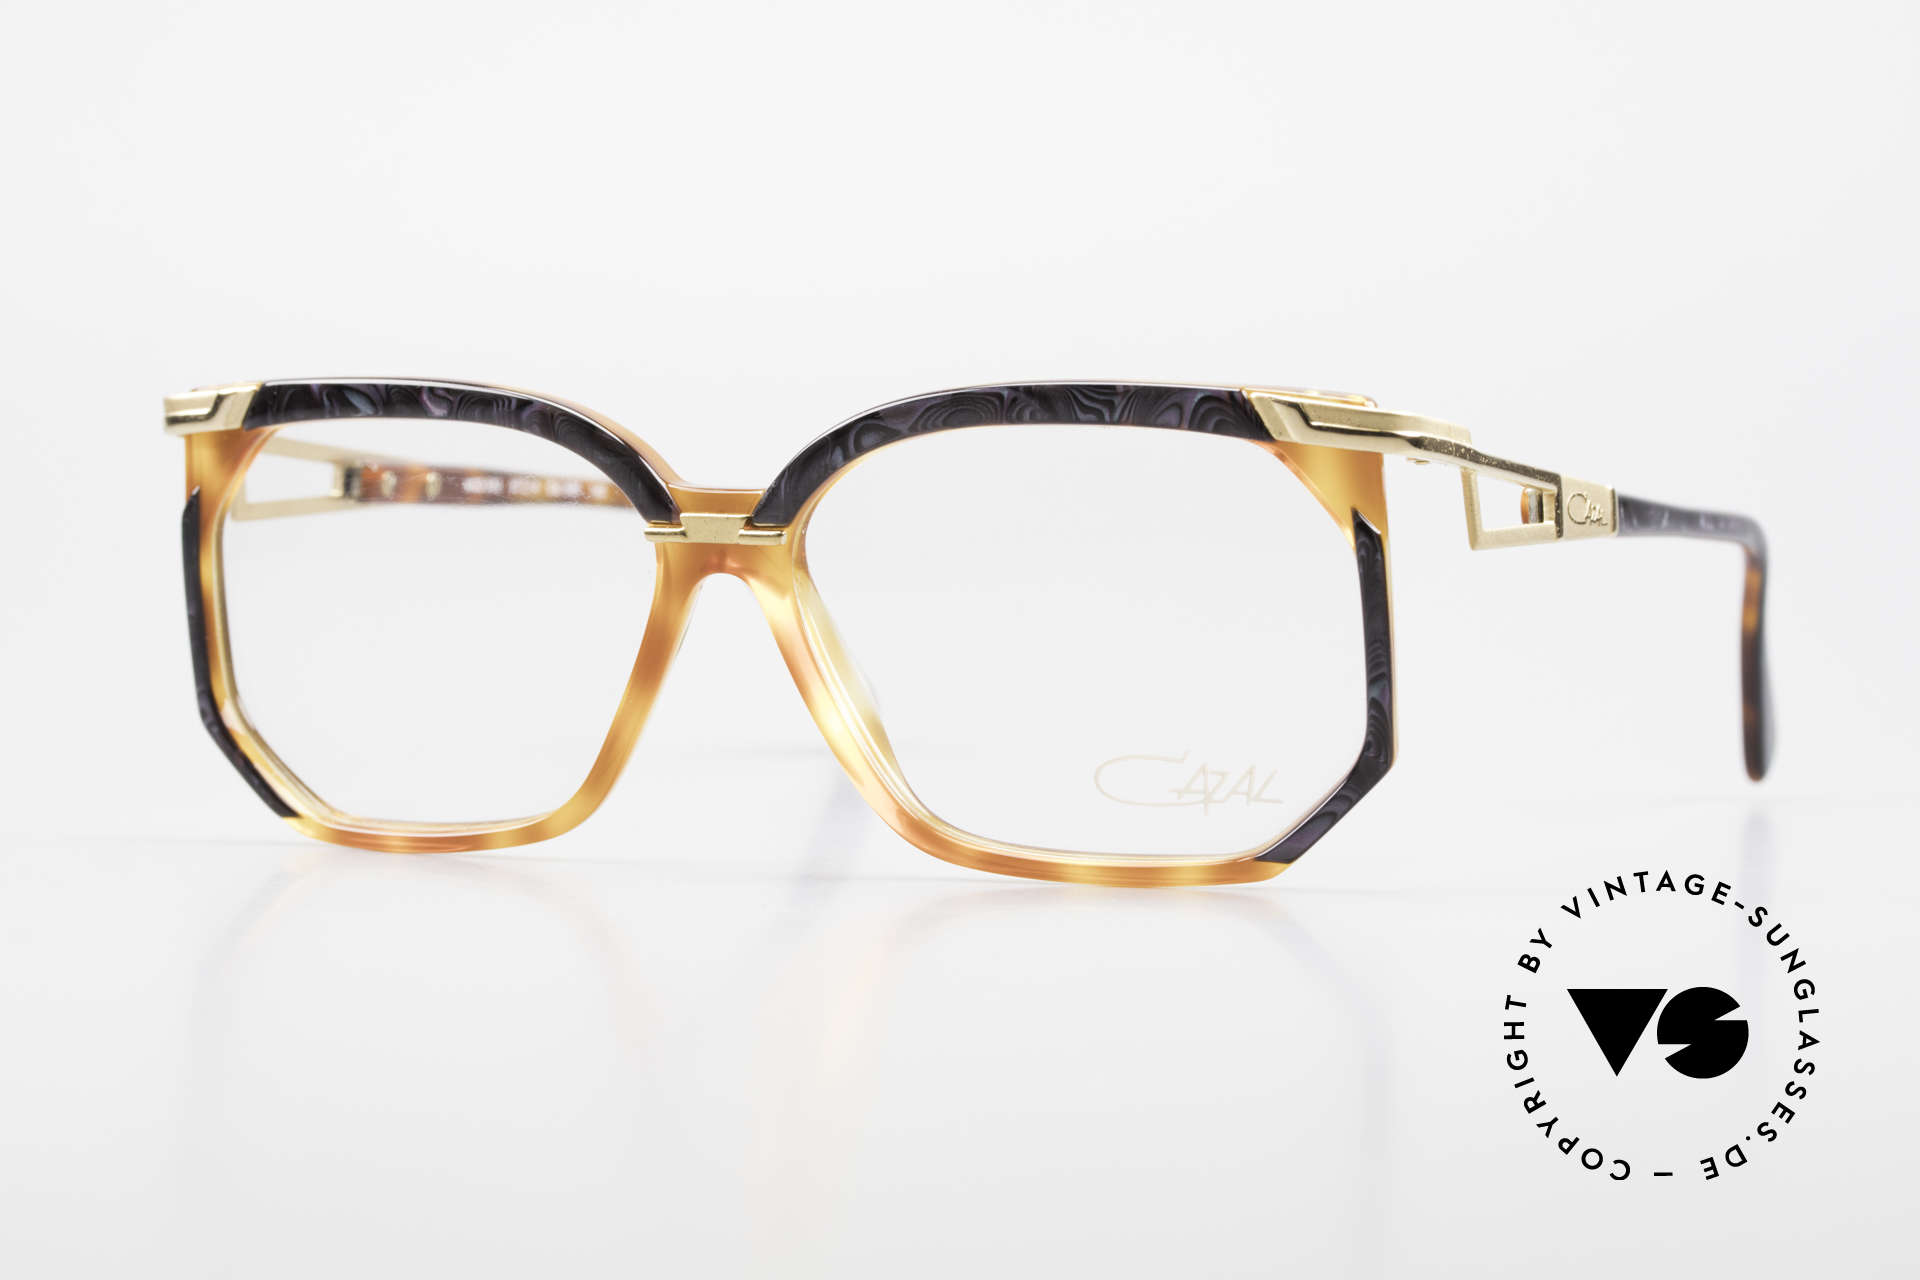 Cazal 333 True Vintage HipHop Frame 90s, extraordinary Cazal designer frame of the early 90's, Made for Men and Women